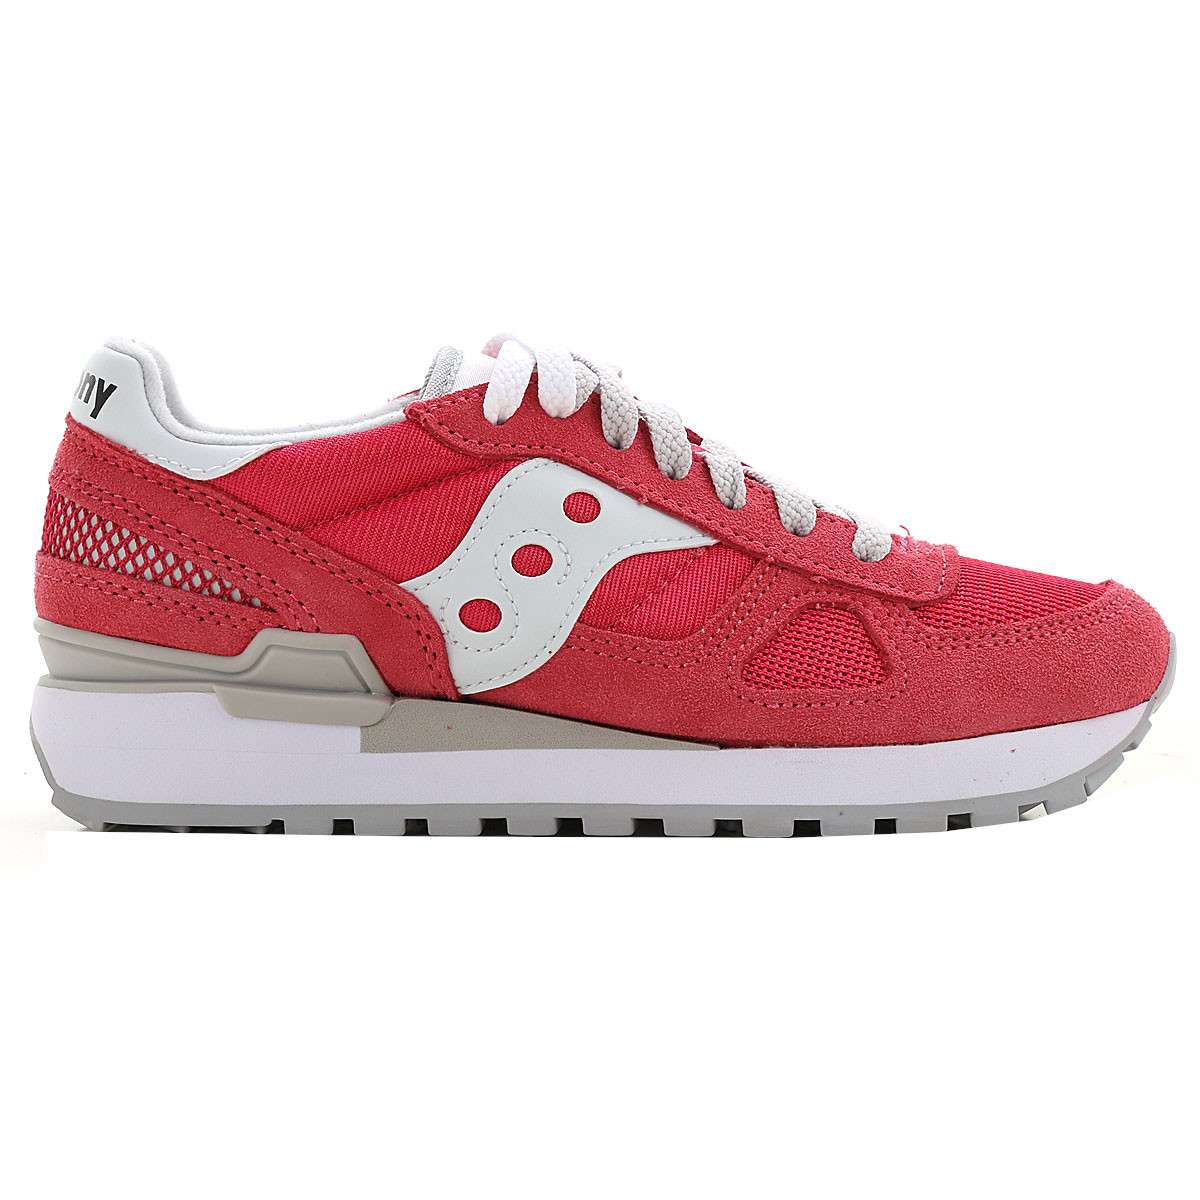 https://www.parmax.com/media/catalog/product/a/i/AI-Outlet_Parmax-Sneackers-Saucony-S1108-677-A.jpg